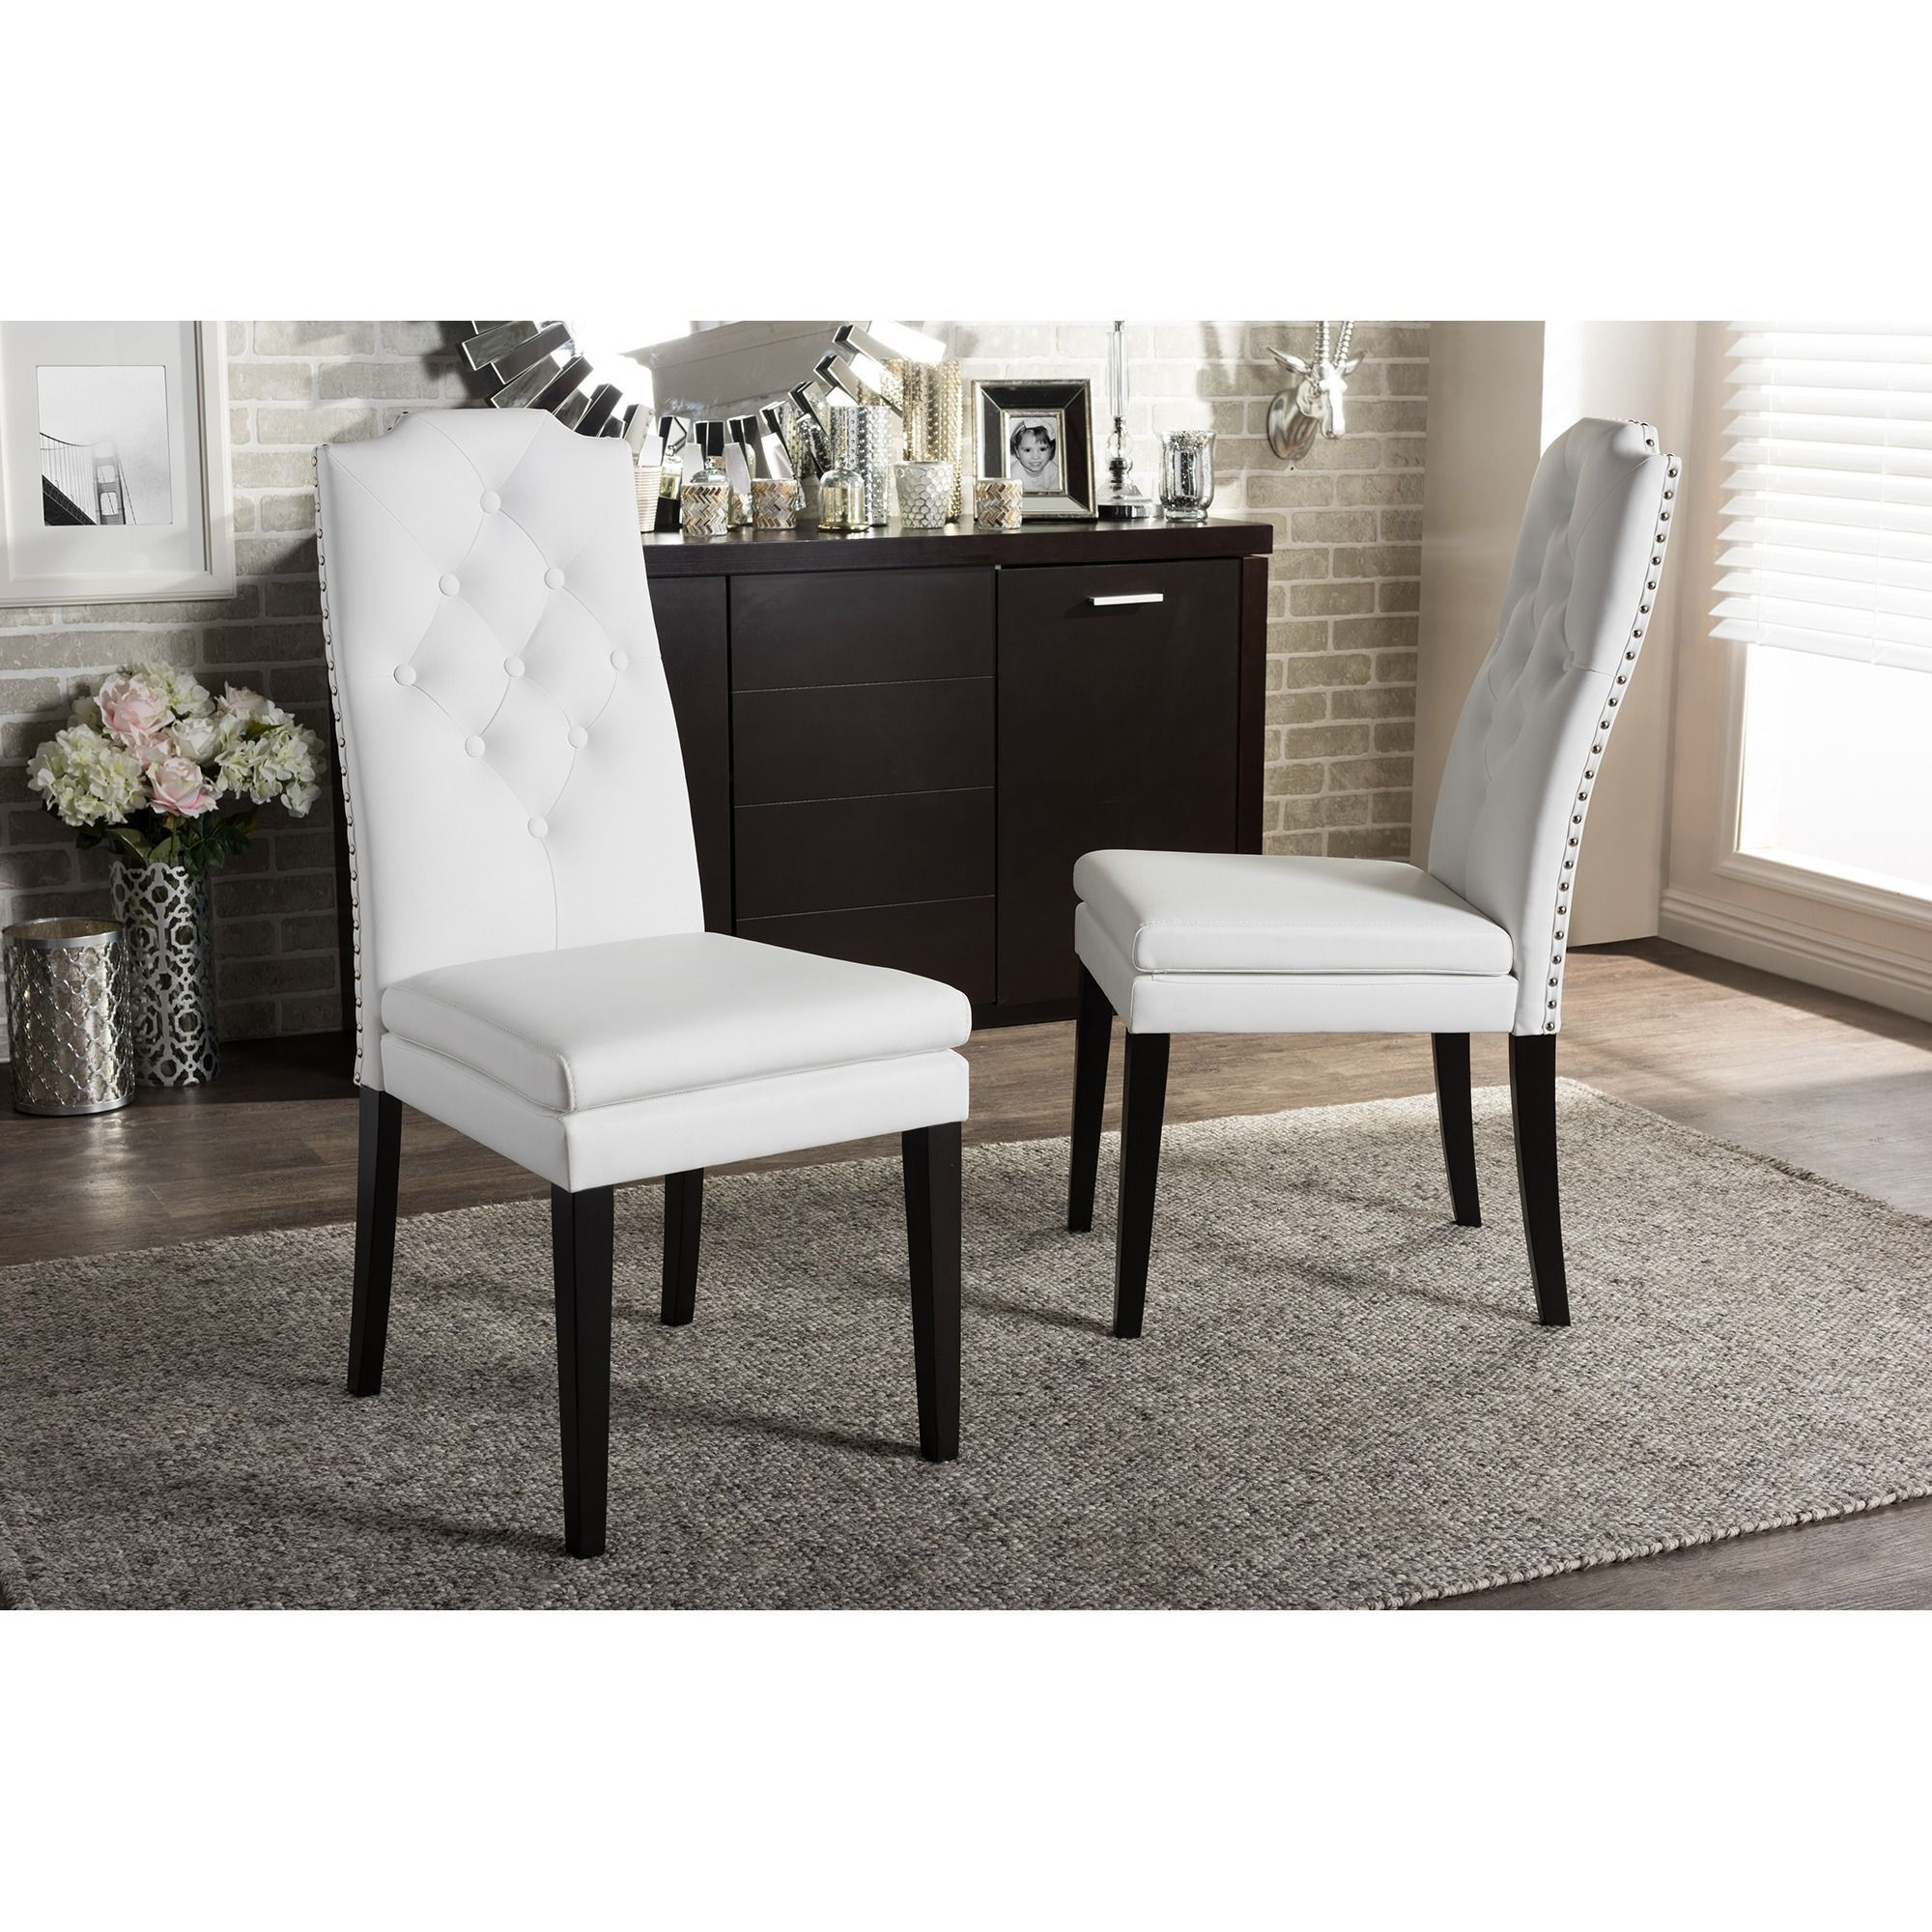 Baxton Studio Dylin Contemporary White Faux Leather With